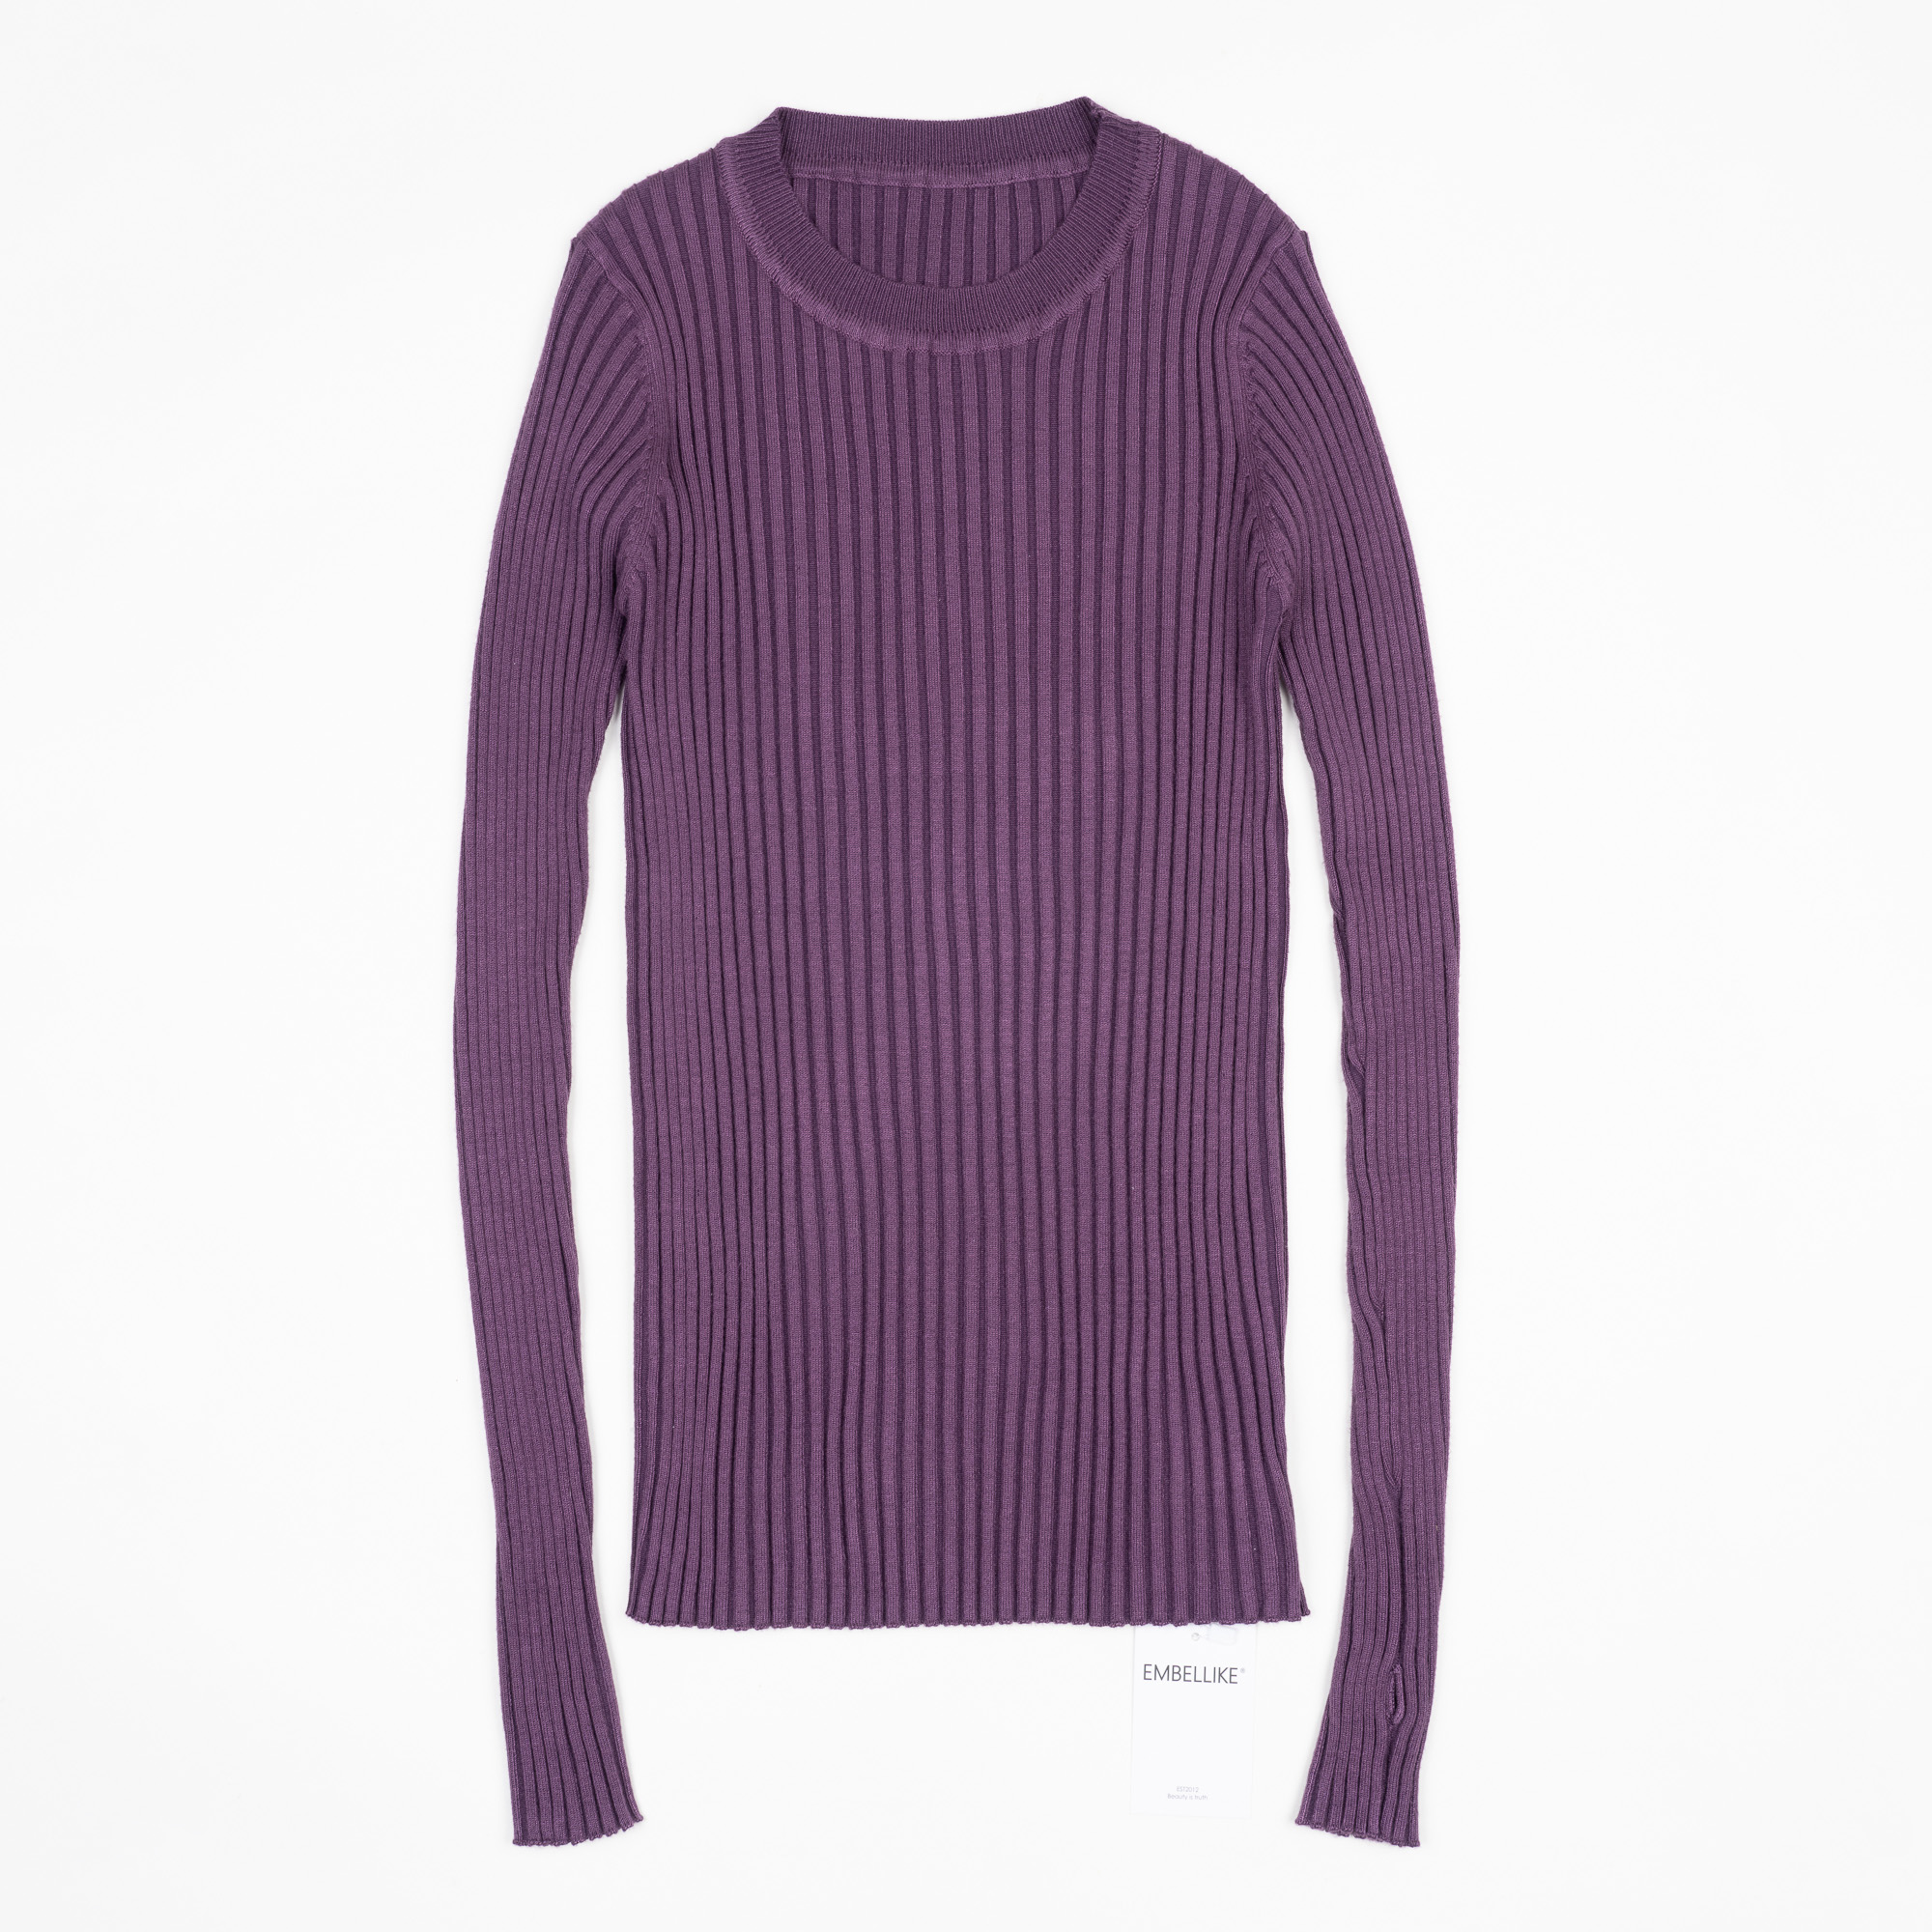 Women Sweater Pullover Basic Ribbed Sweaters Cotton Tops Knitted Solid Crew Neck With Thumb Hole 12